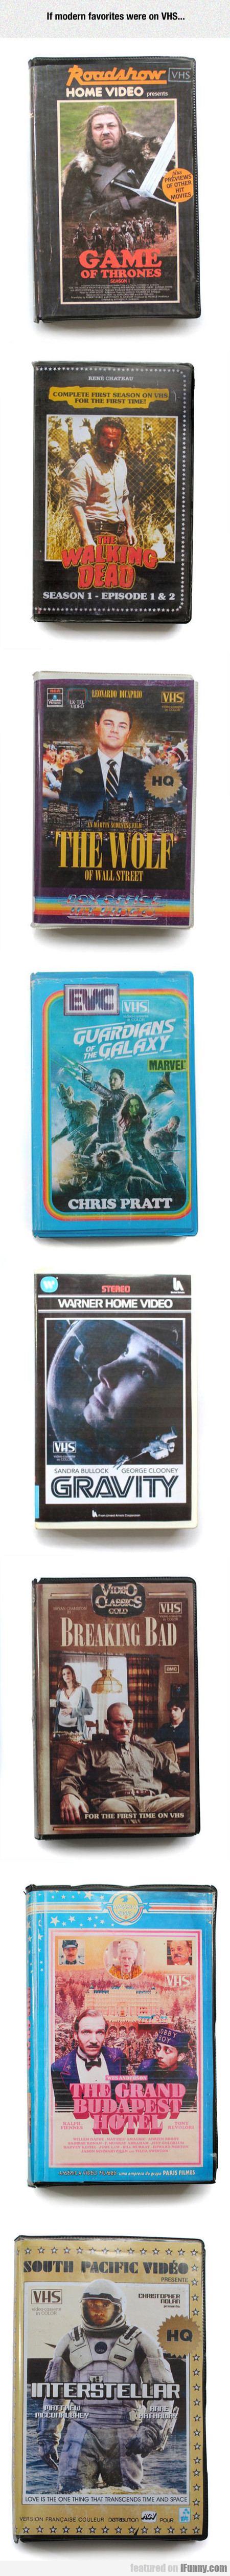 Modern Favorites On Epic Vhs